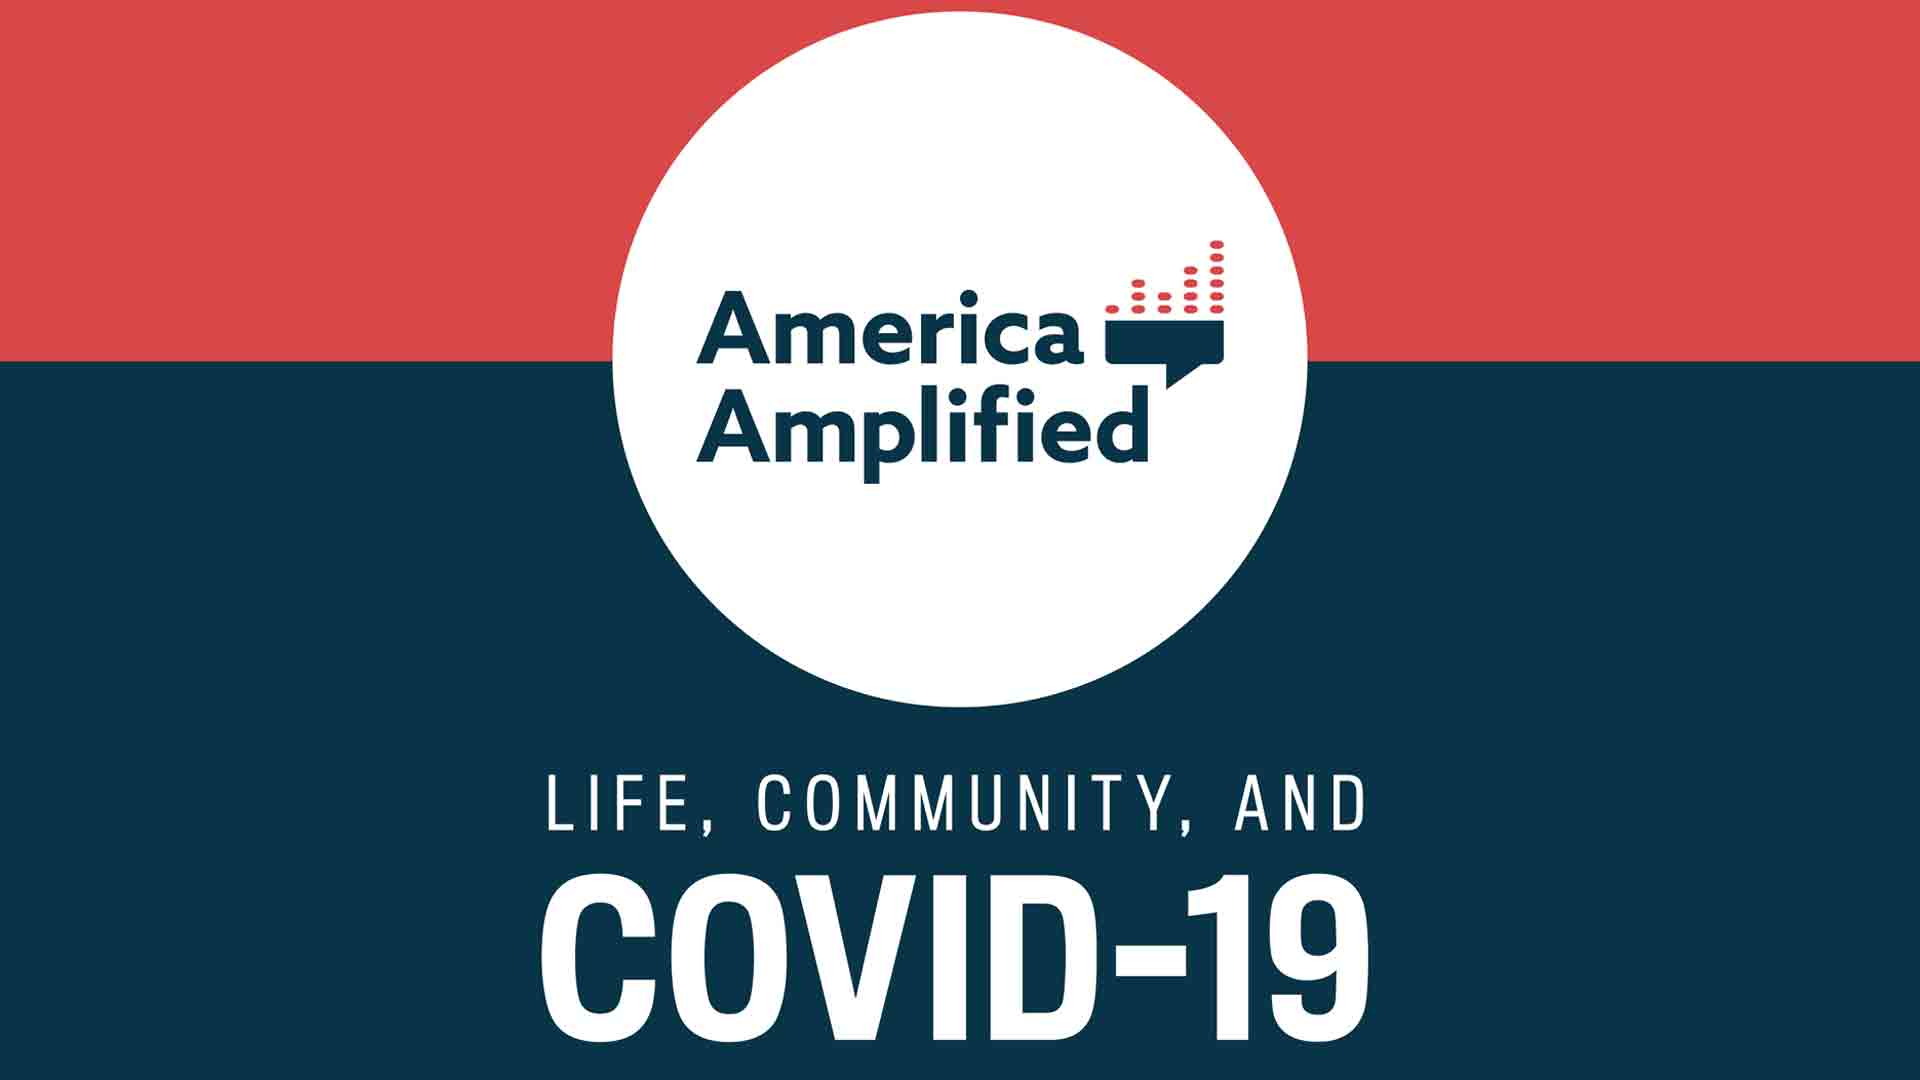 American Amplified: Life, Community and Covid-19